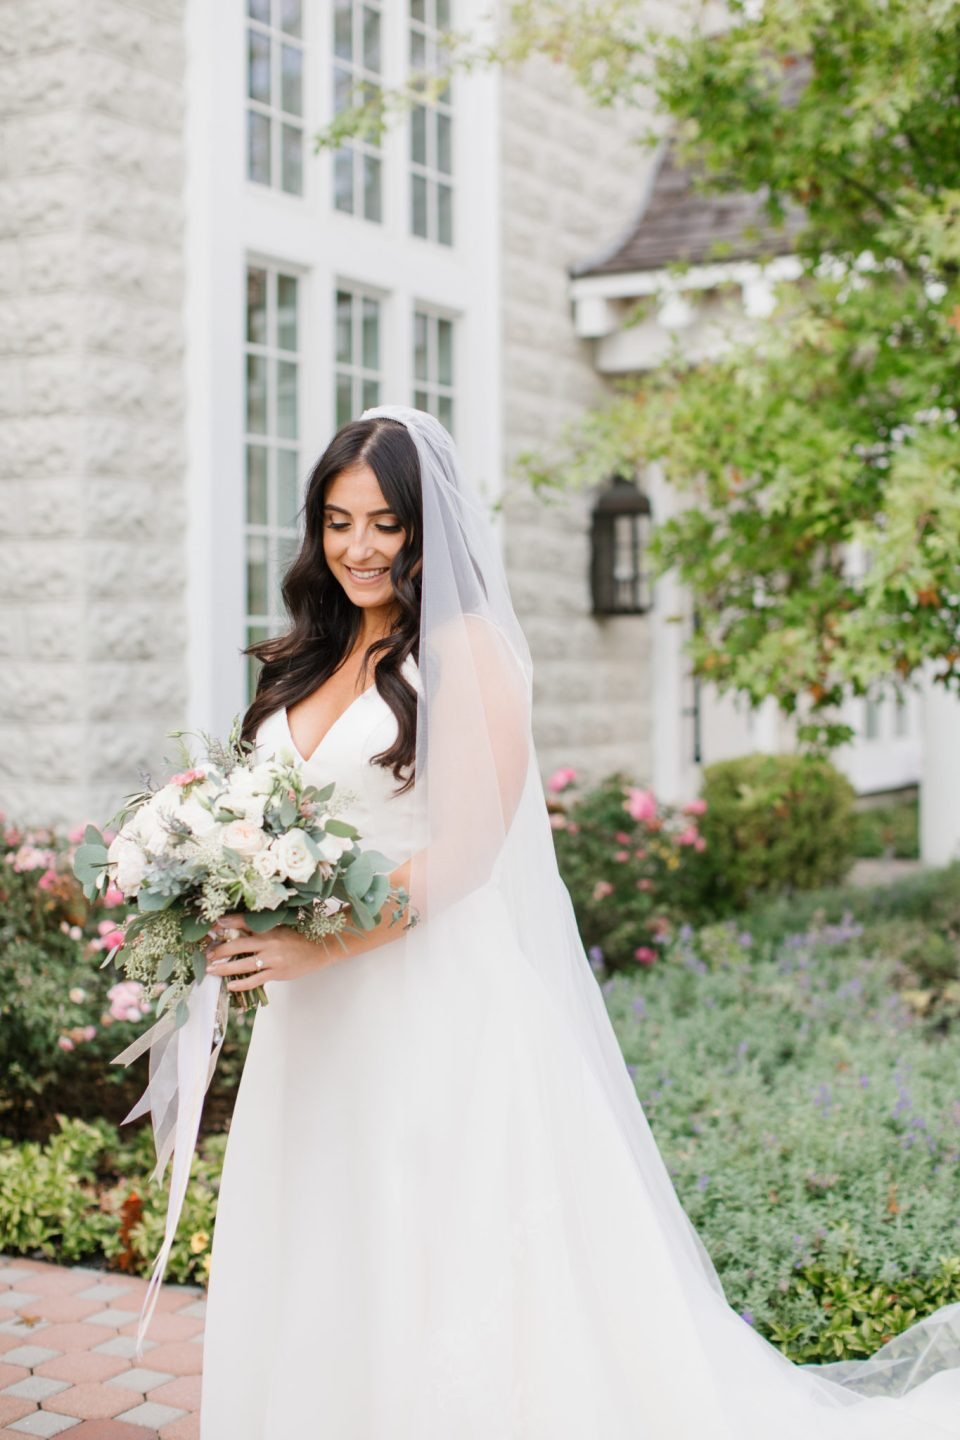 Ashley Mac Photographs photographs bridal portraits at Ryland Inn